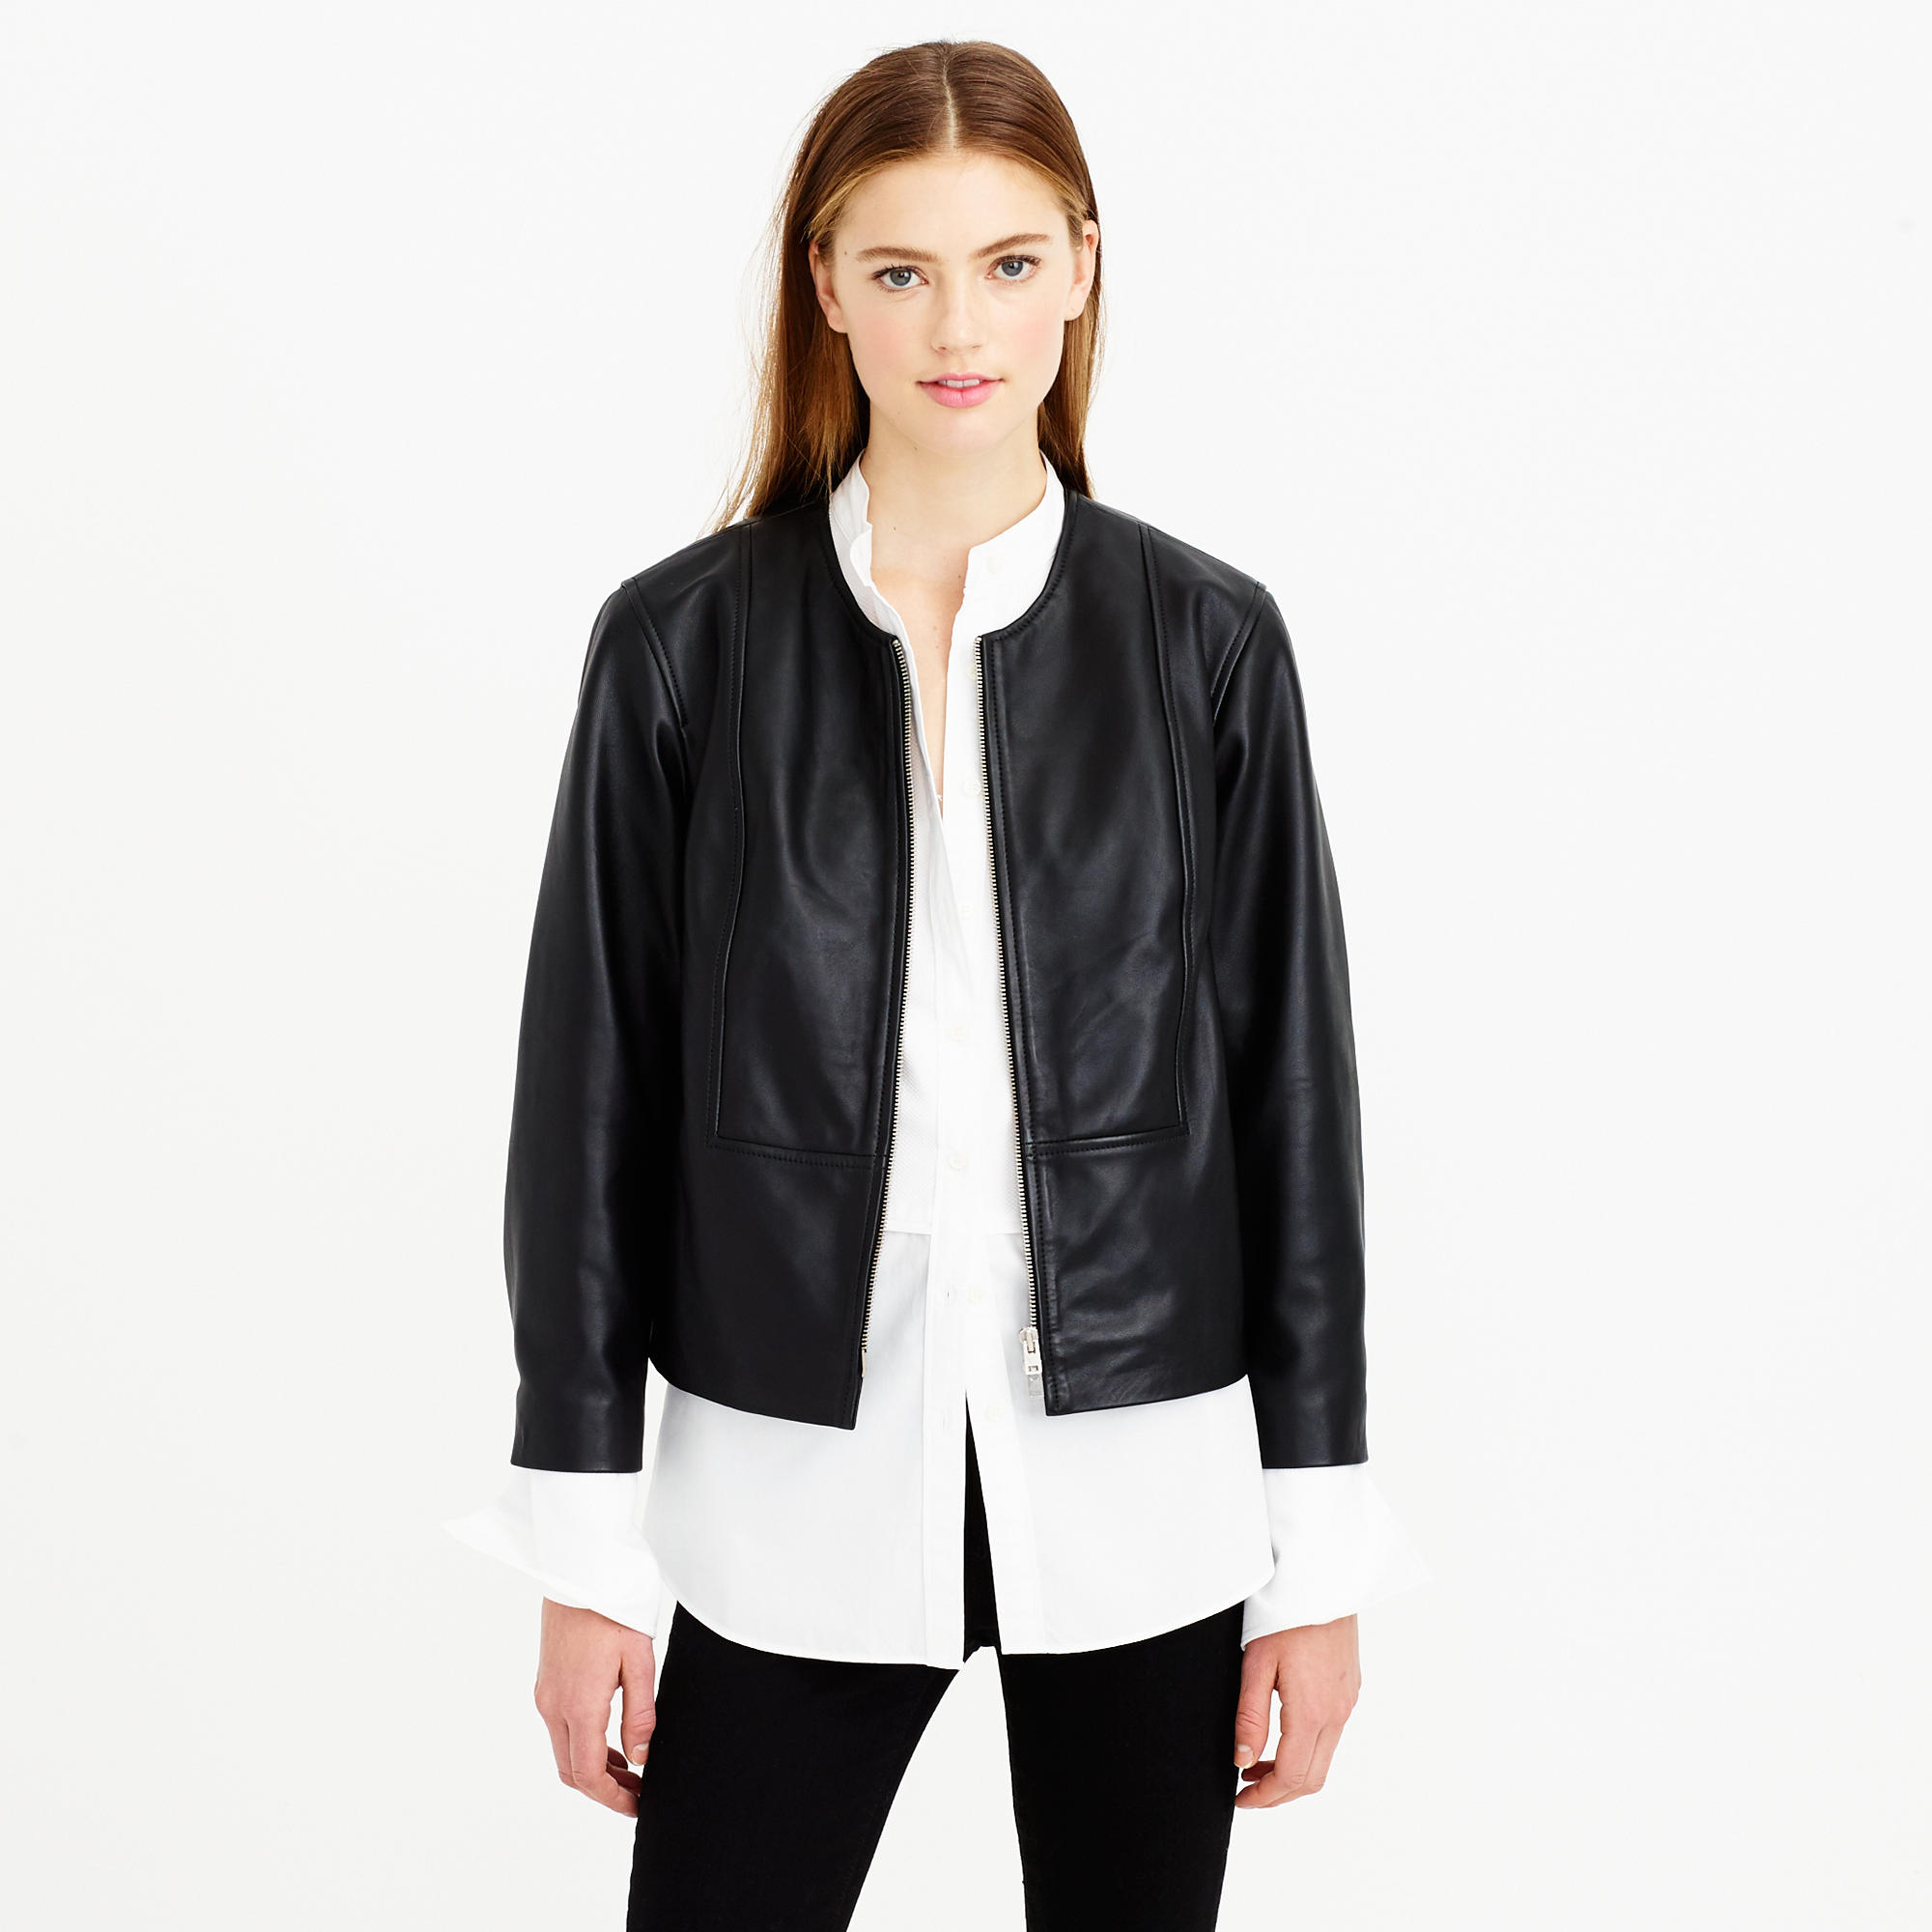 J.crew Collection Collarless Leather Jacket in Black | Lyst